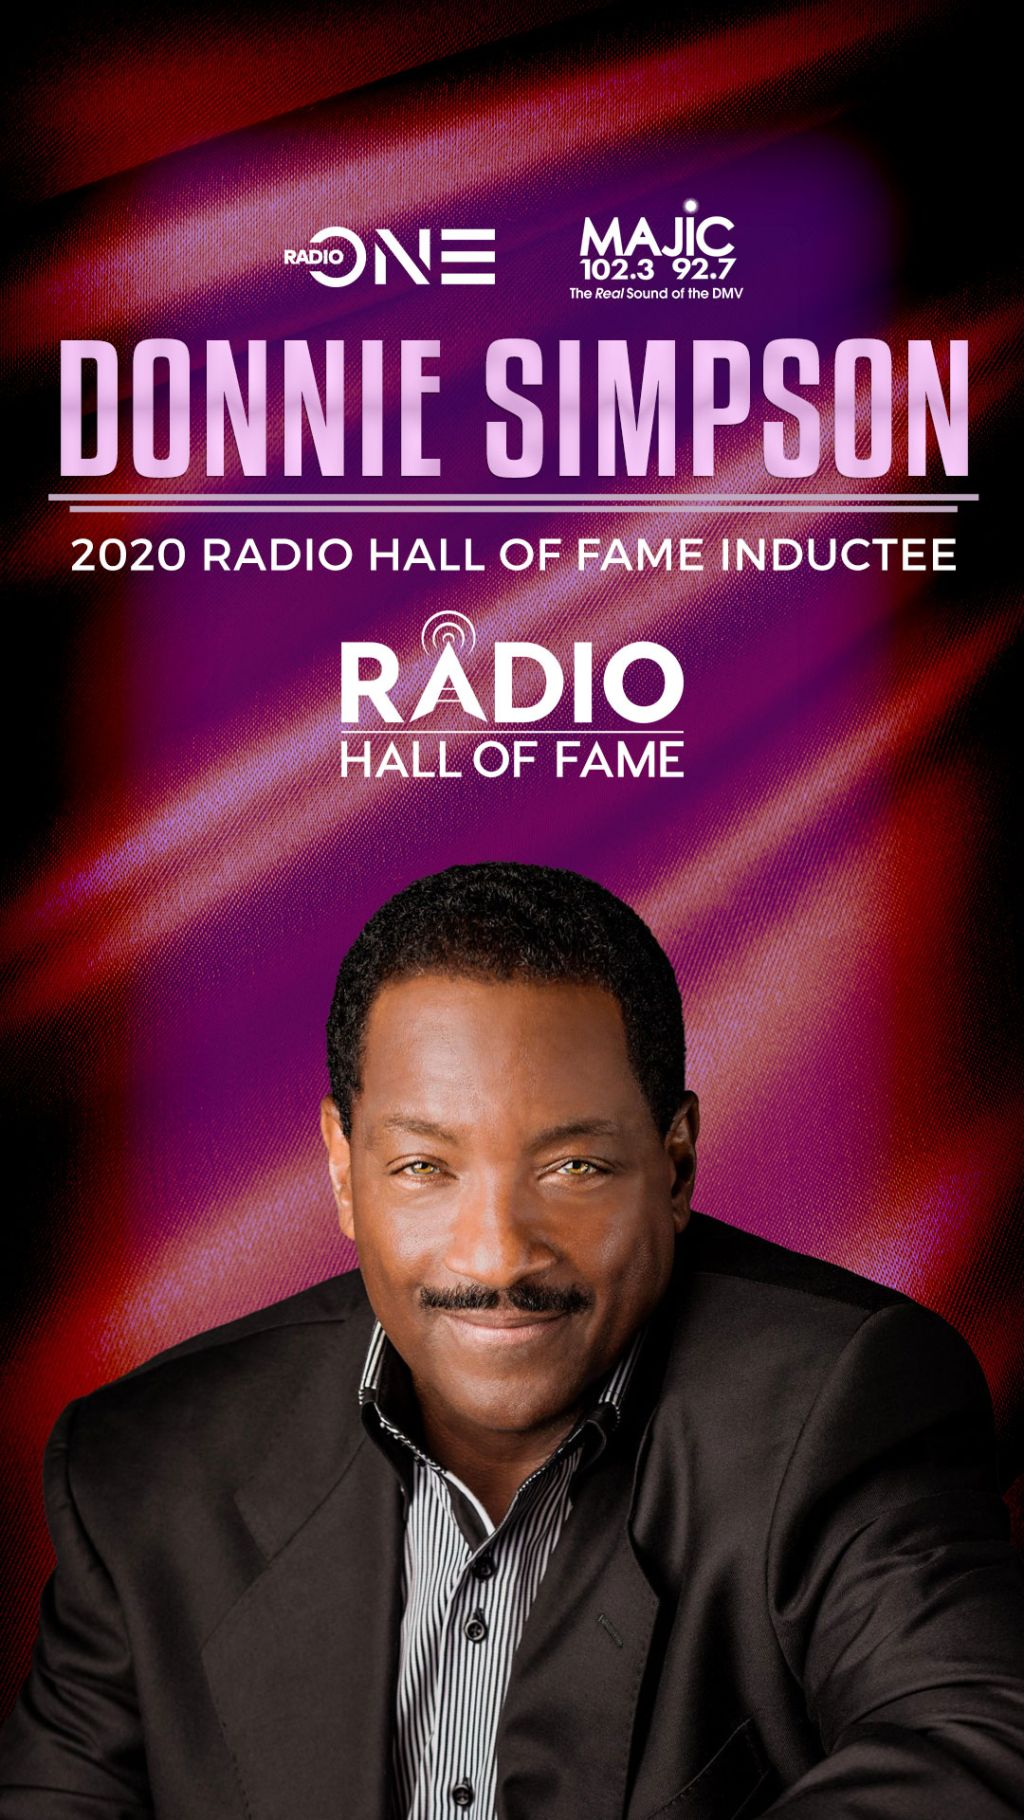 Donnie Simpson Radio Hall of Fame